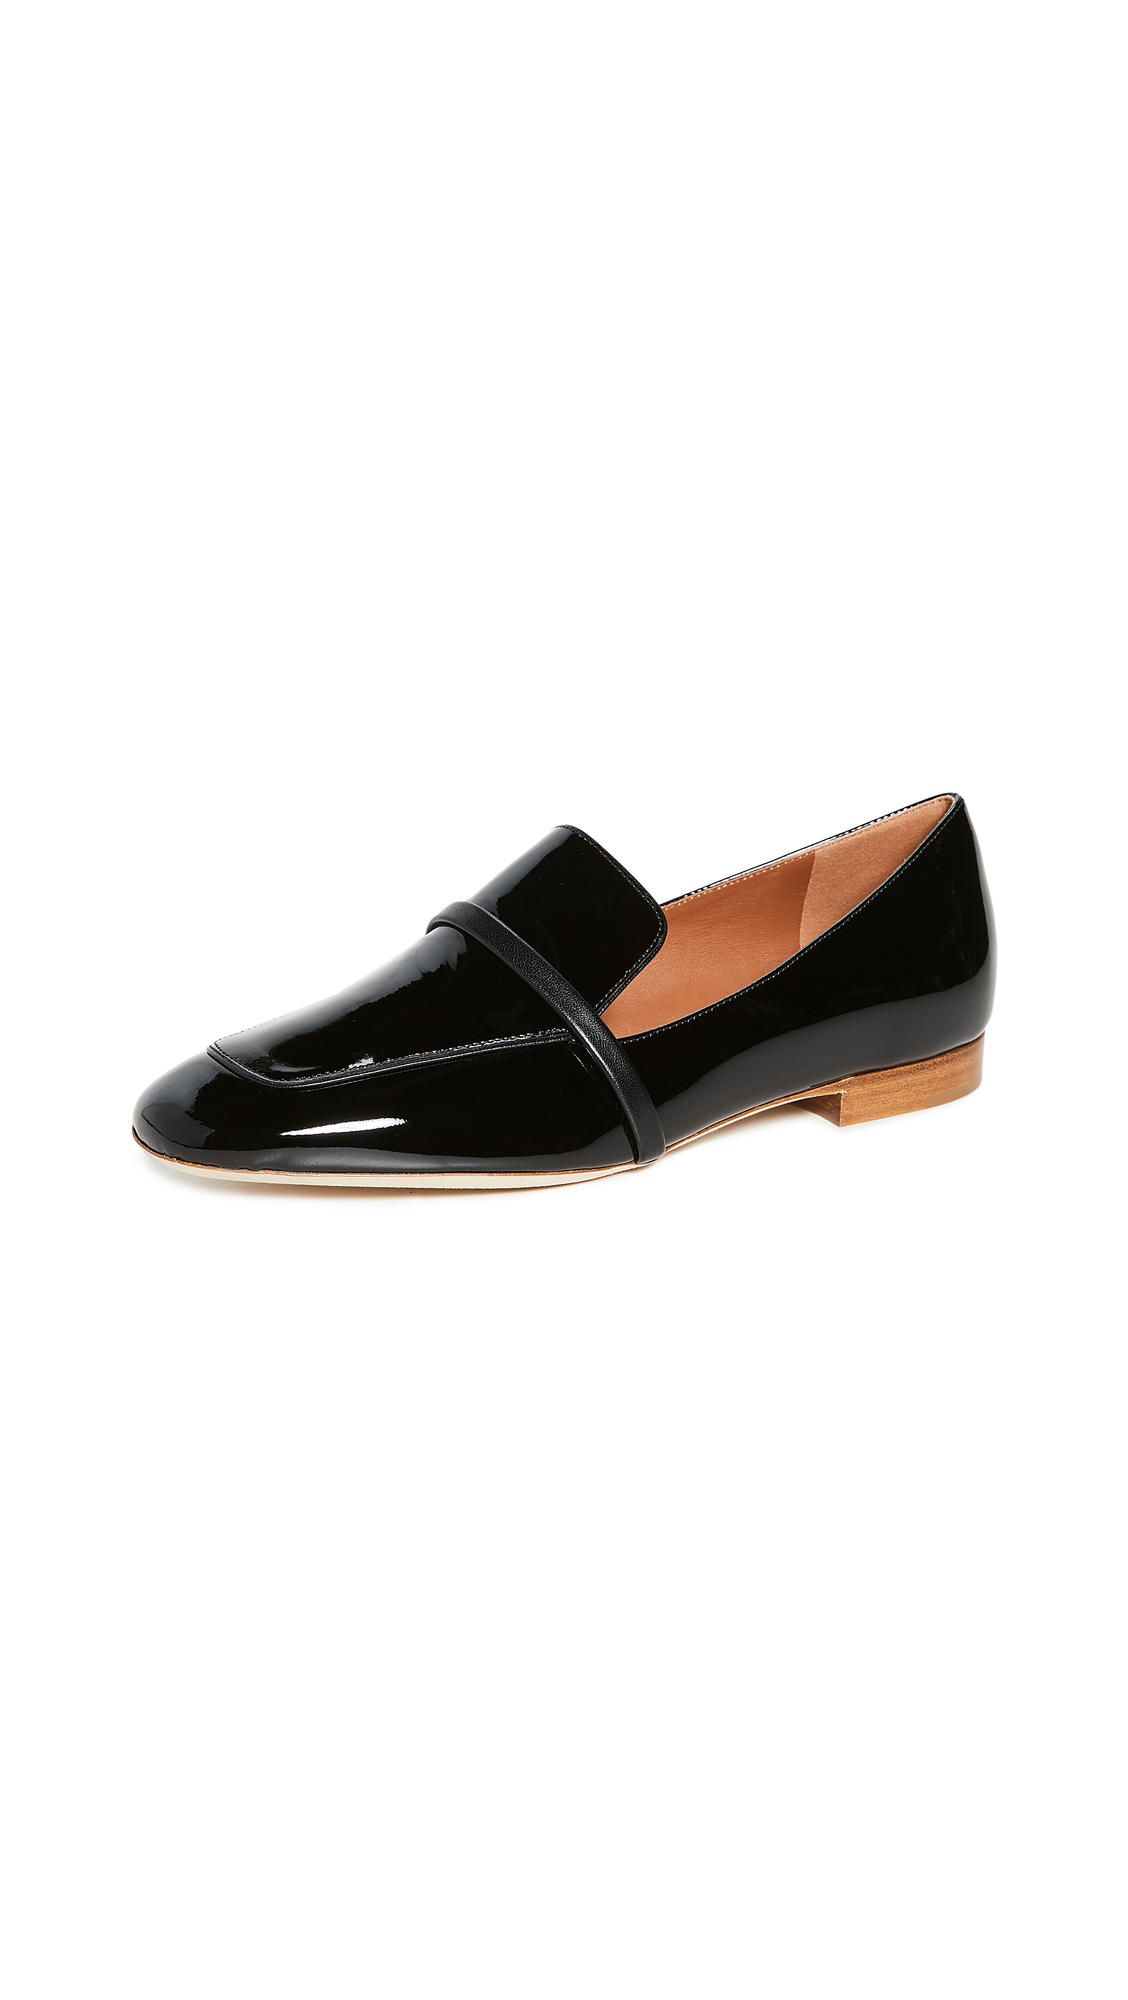 Malone Souliers Jane Flats - 40% Off Sale